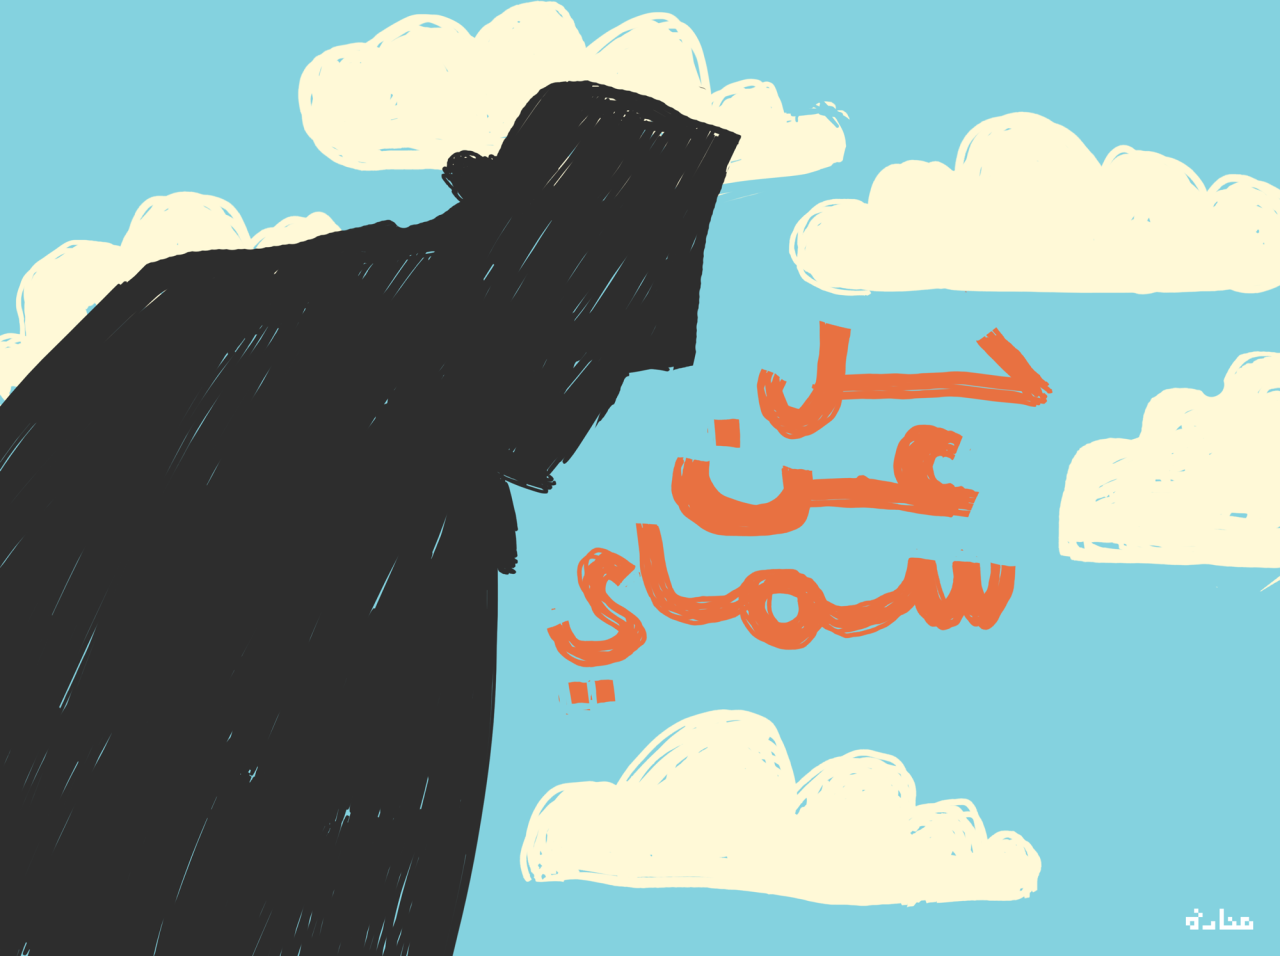 #arabic #leavemealone #sky #clouds #shadow